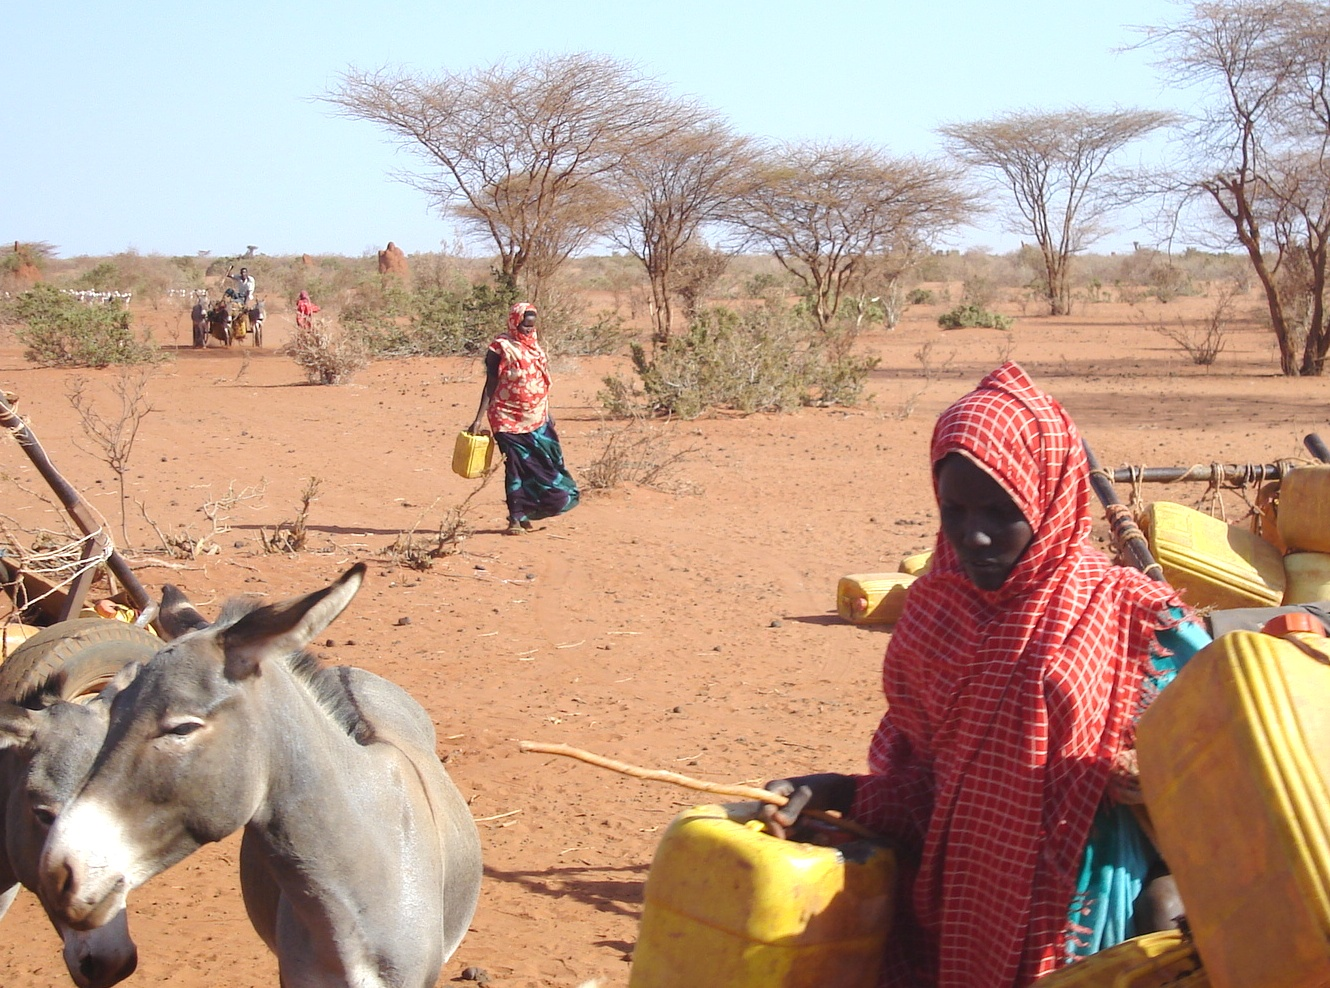 In the drought-ravaged Gedo region of Somalia, obtaining water can involve treks of 20km or more